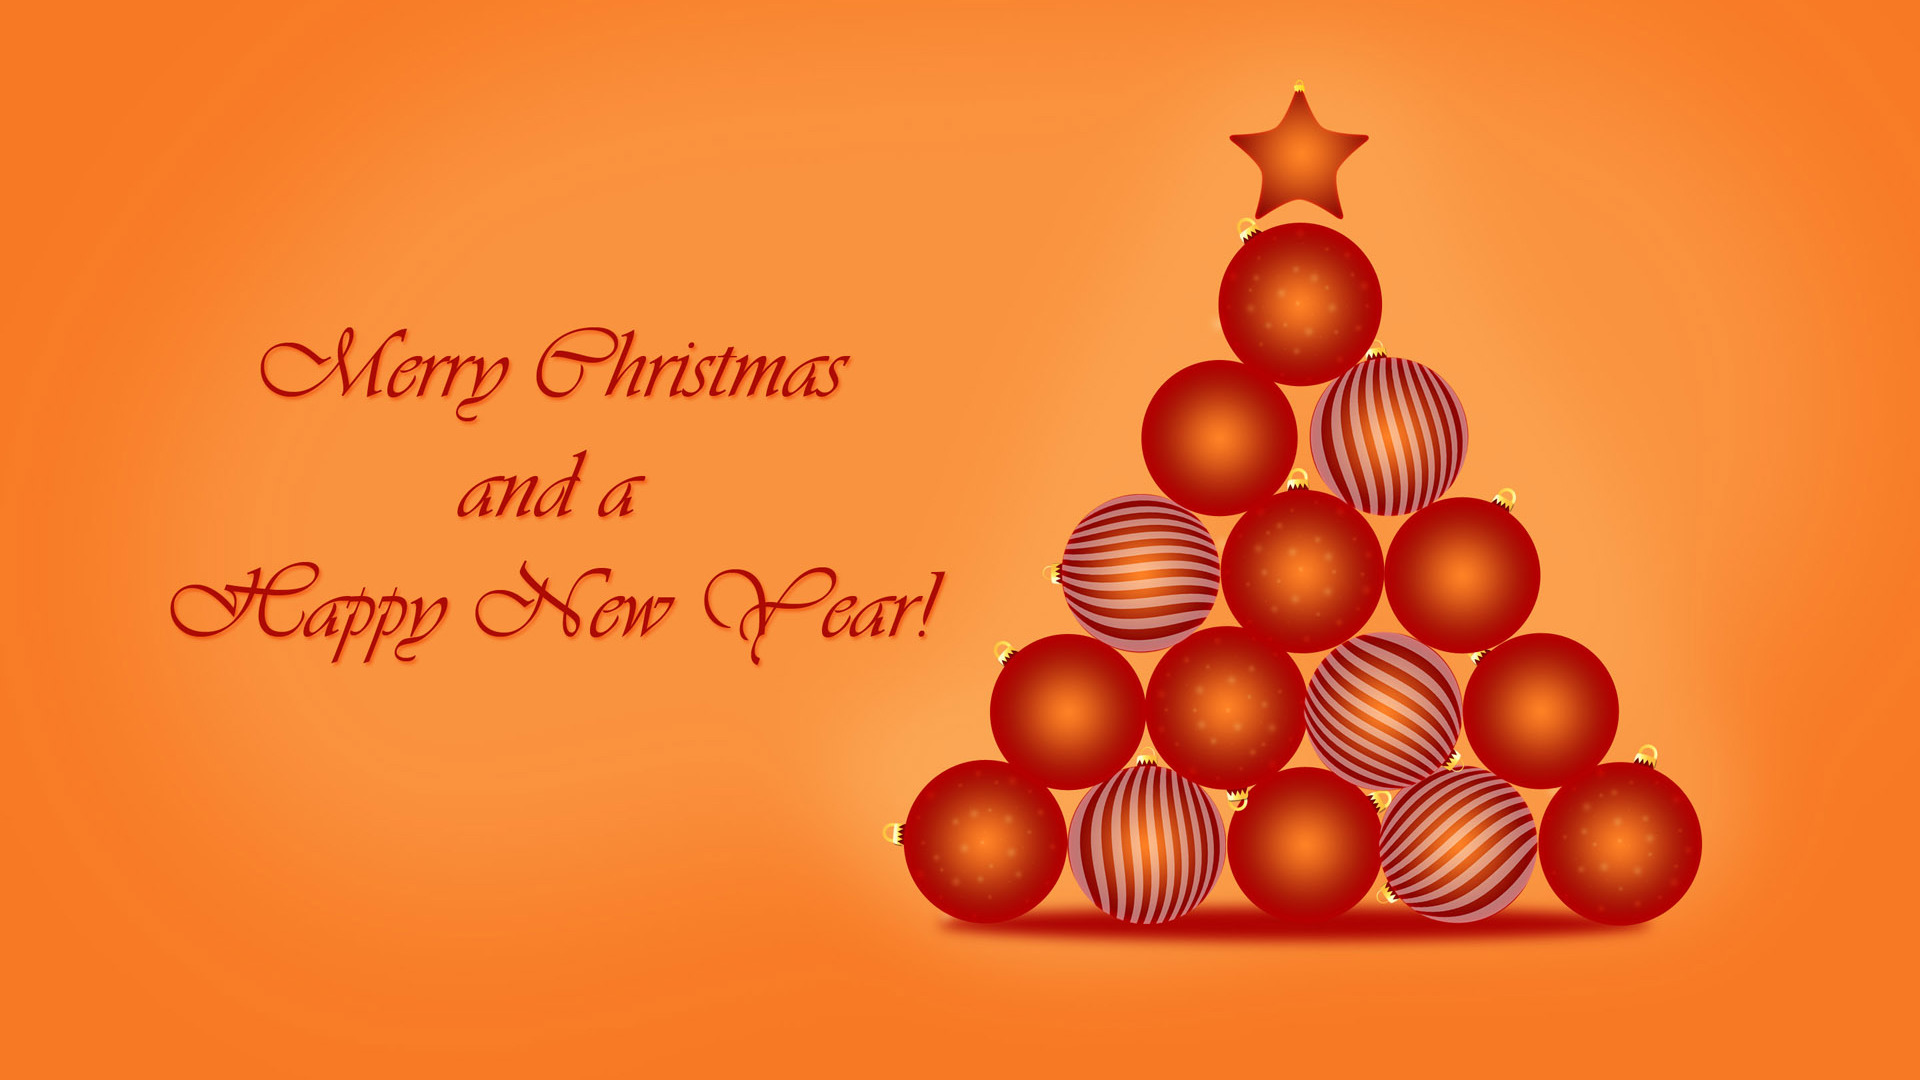 merry christmas and happy new year wallpaper free download